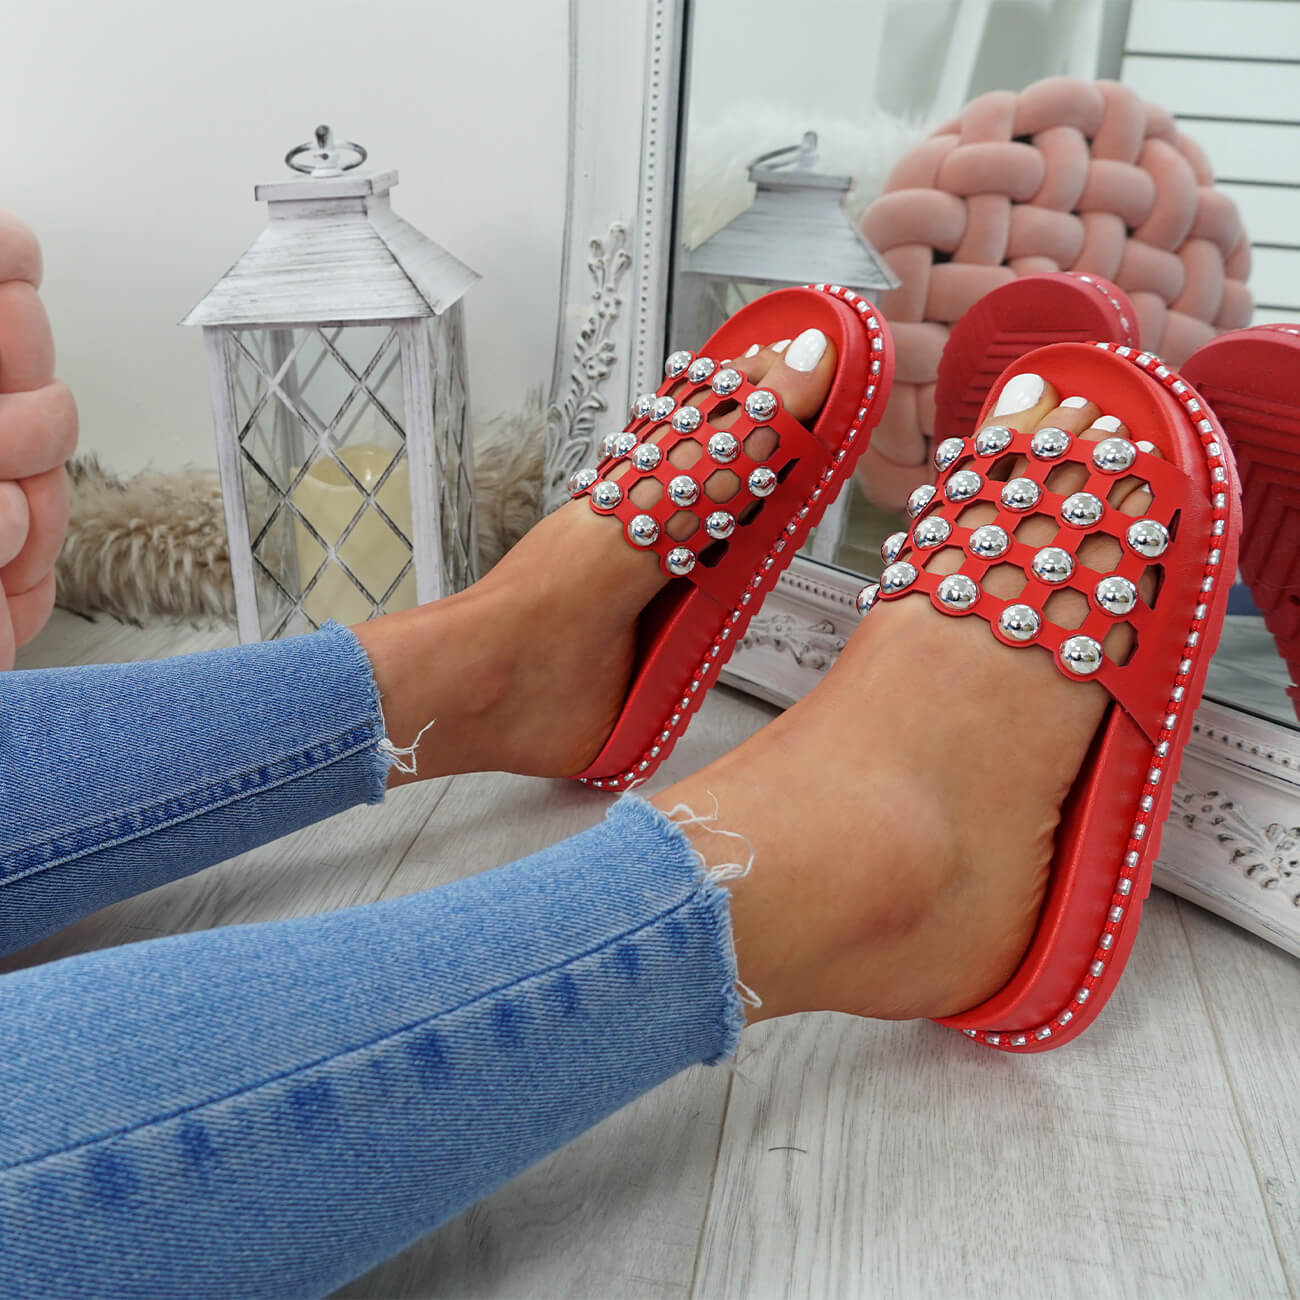 WOMENS-LADIES-PEARL-STUDDED-SLIP-ON-FLAT-SANDALS-HEELS-FLIP-FLOP-SHOES-SIZE thumbnail 18